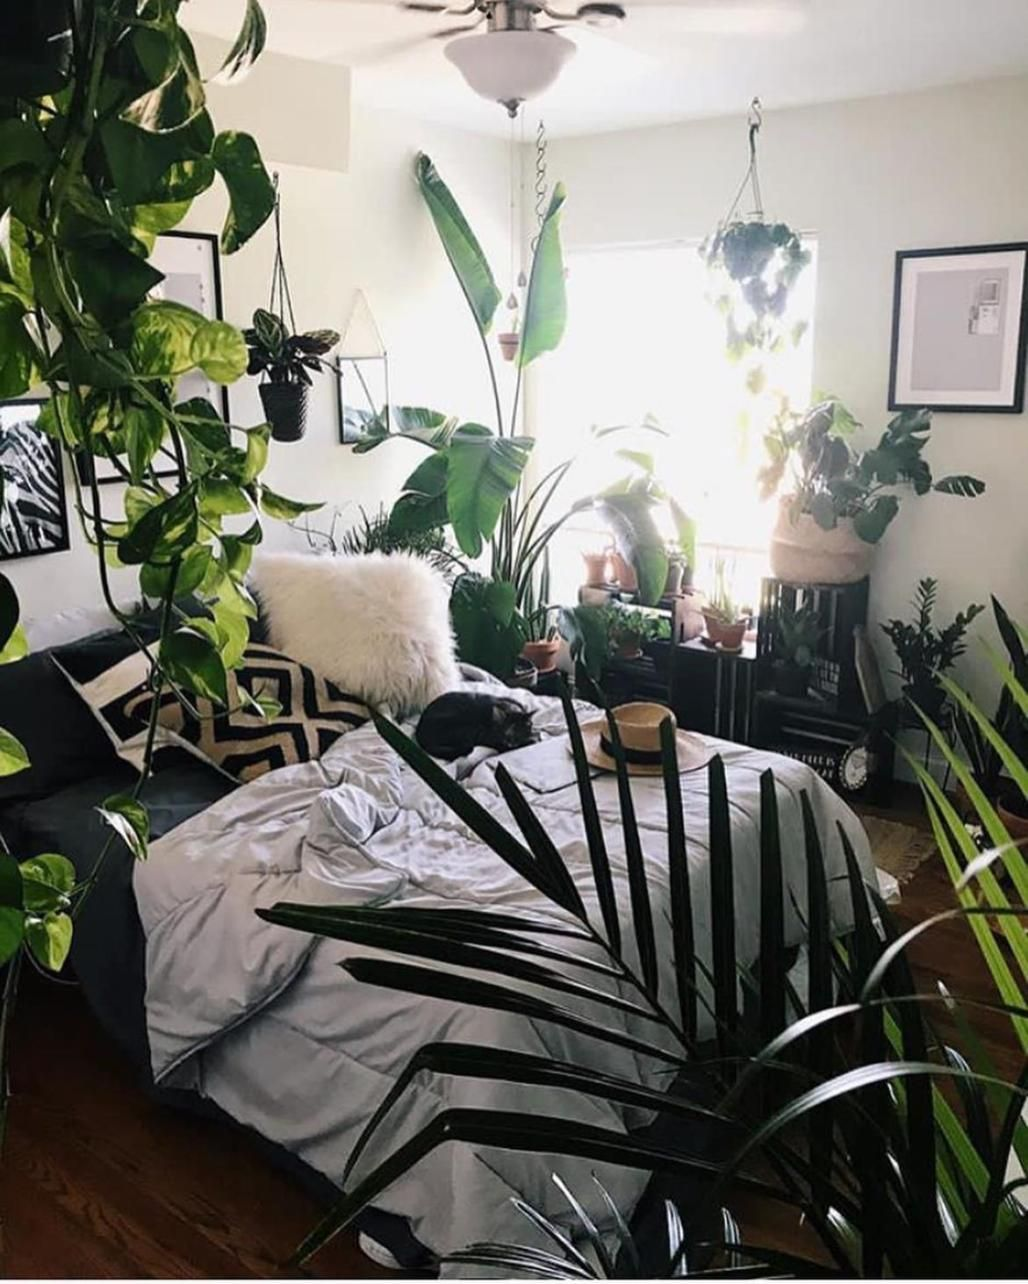 38 Stunning Urban Jungle Room Decor That Will Make Your Home More Cozy Jungle Room Decor Earthy Home Decor Room Decor